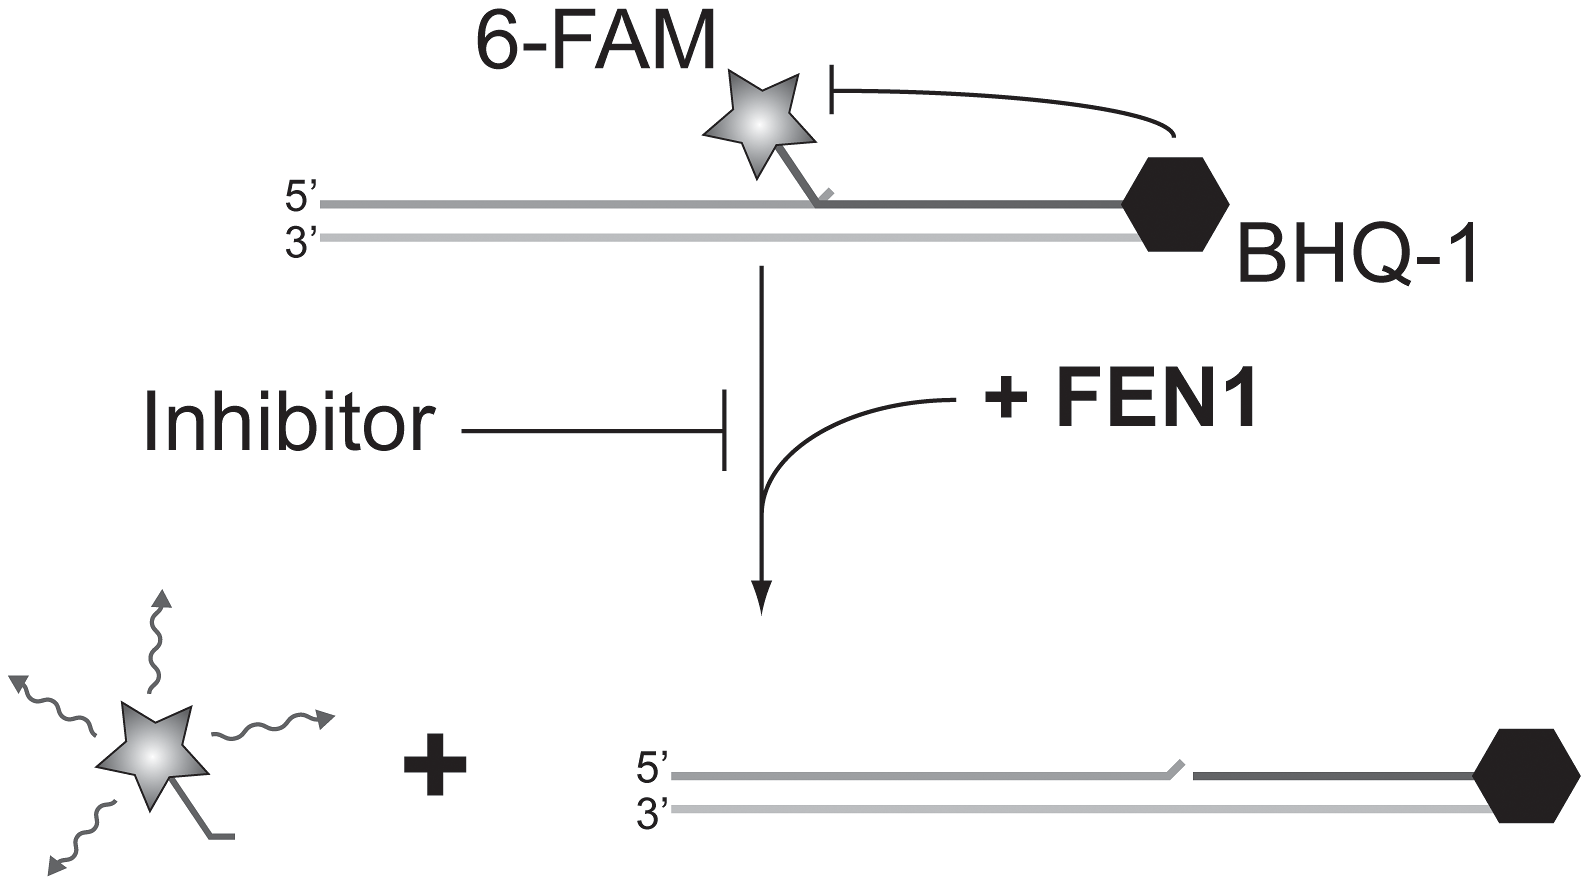 Screening for FEN1 inhibitors <i>in vitro</i>.